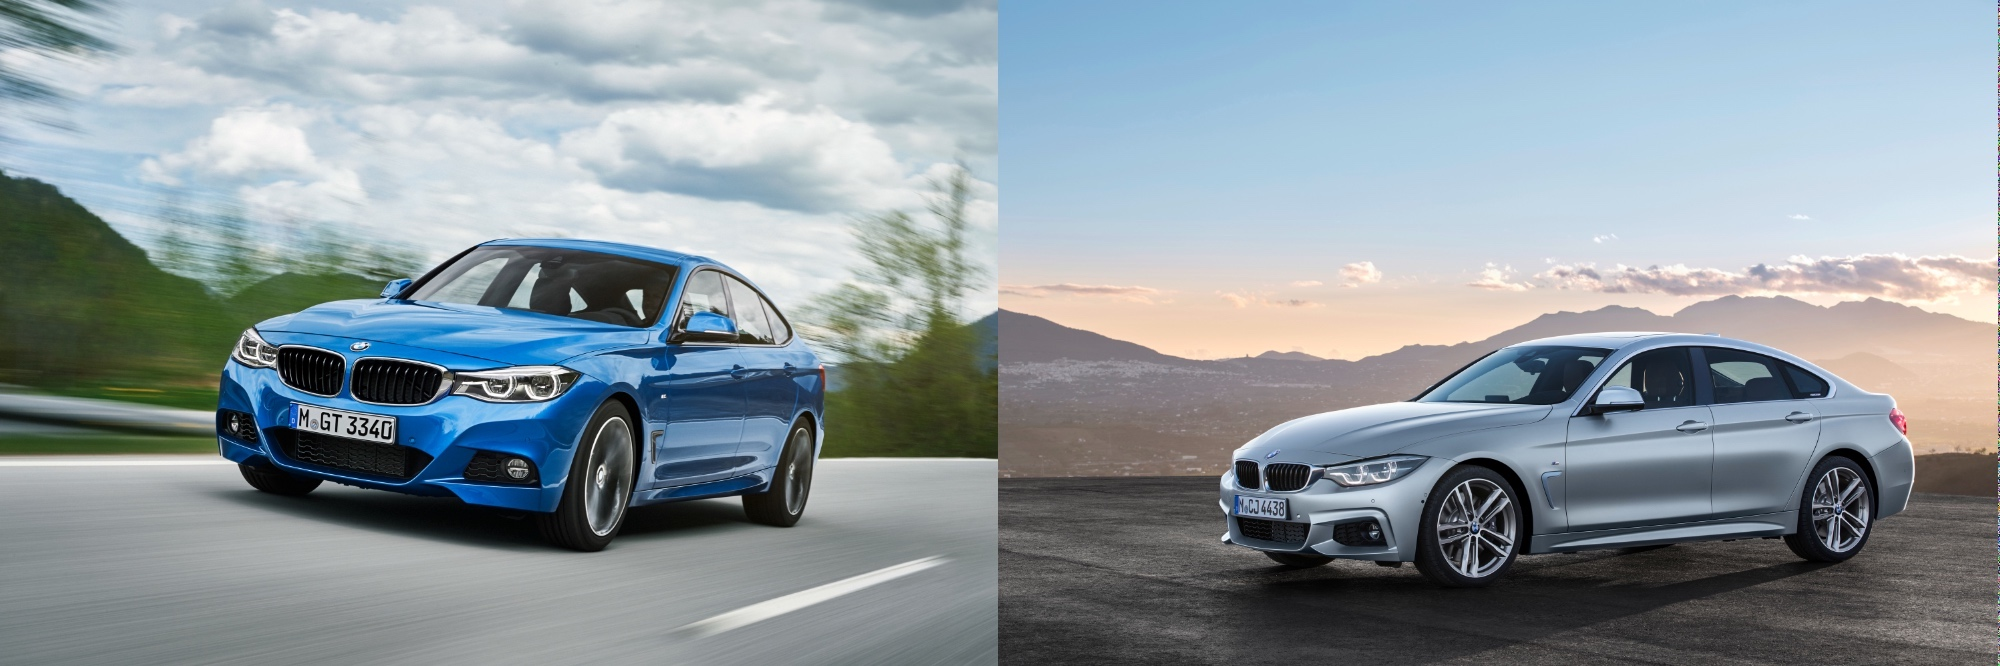 Bmw 3 Gran Turismo Vs 4 Coupe Cars Life Blog